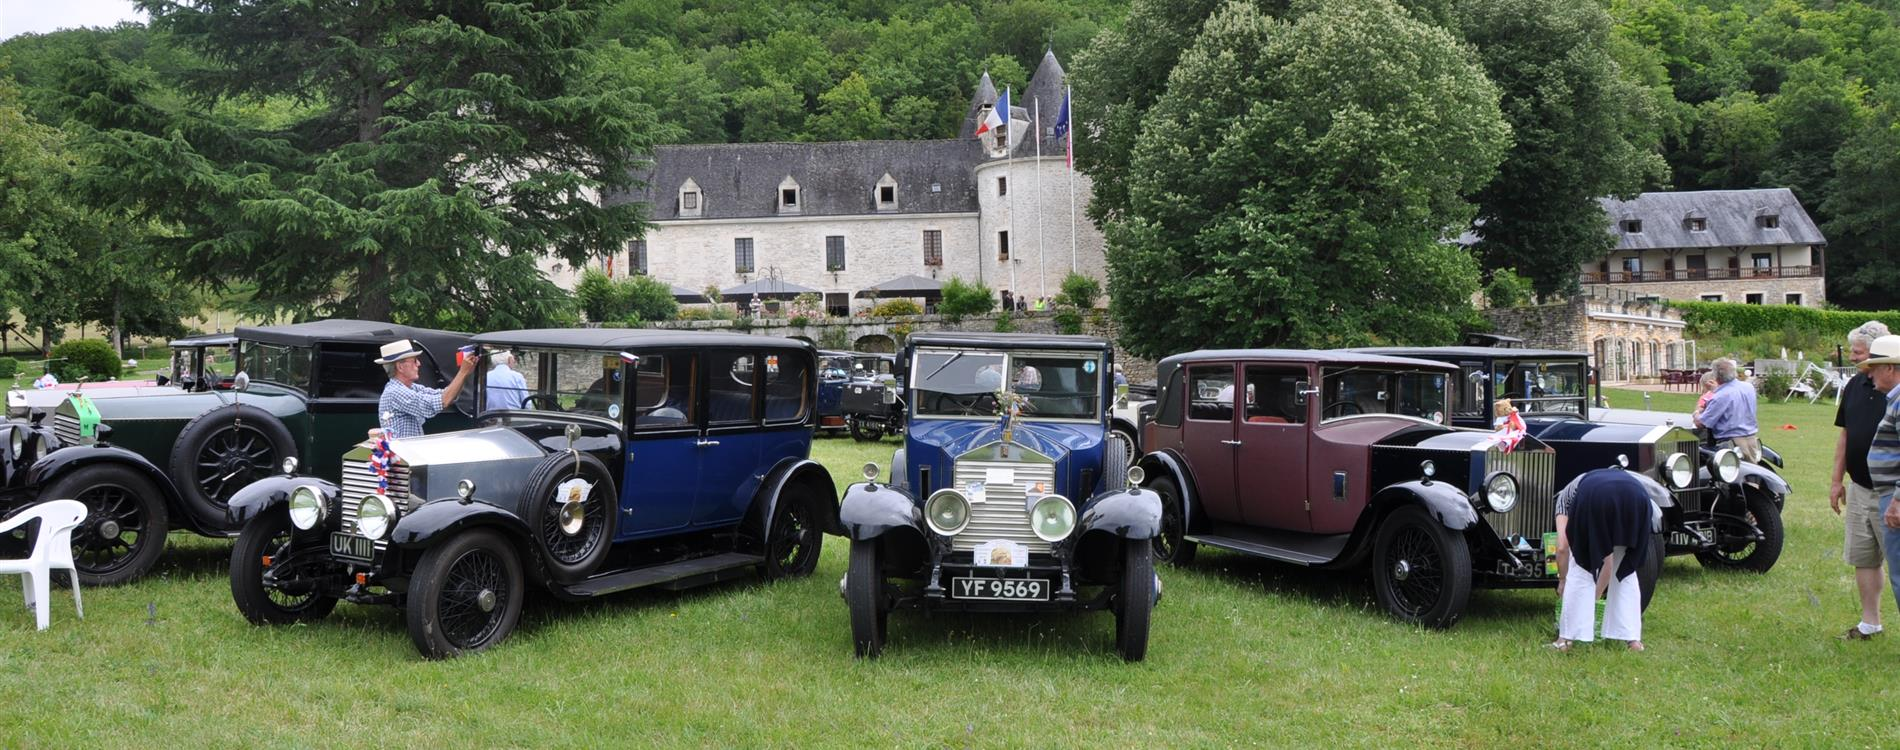 Rolls-Royce Enthusiast's club au chateau